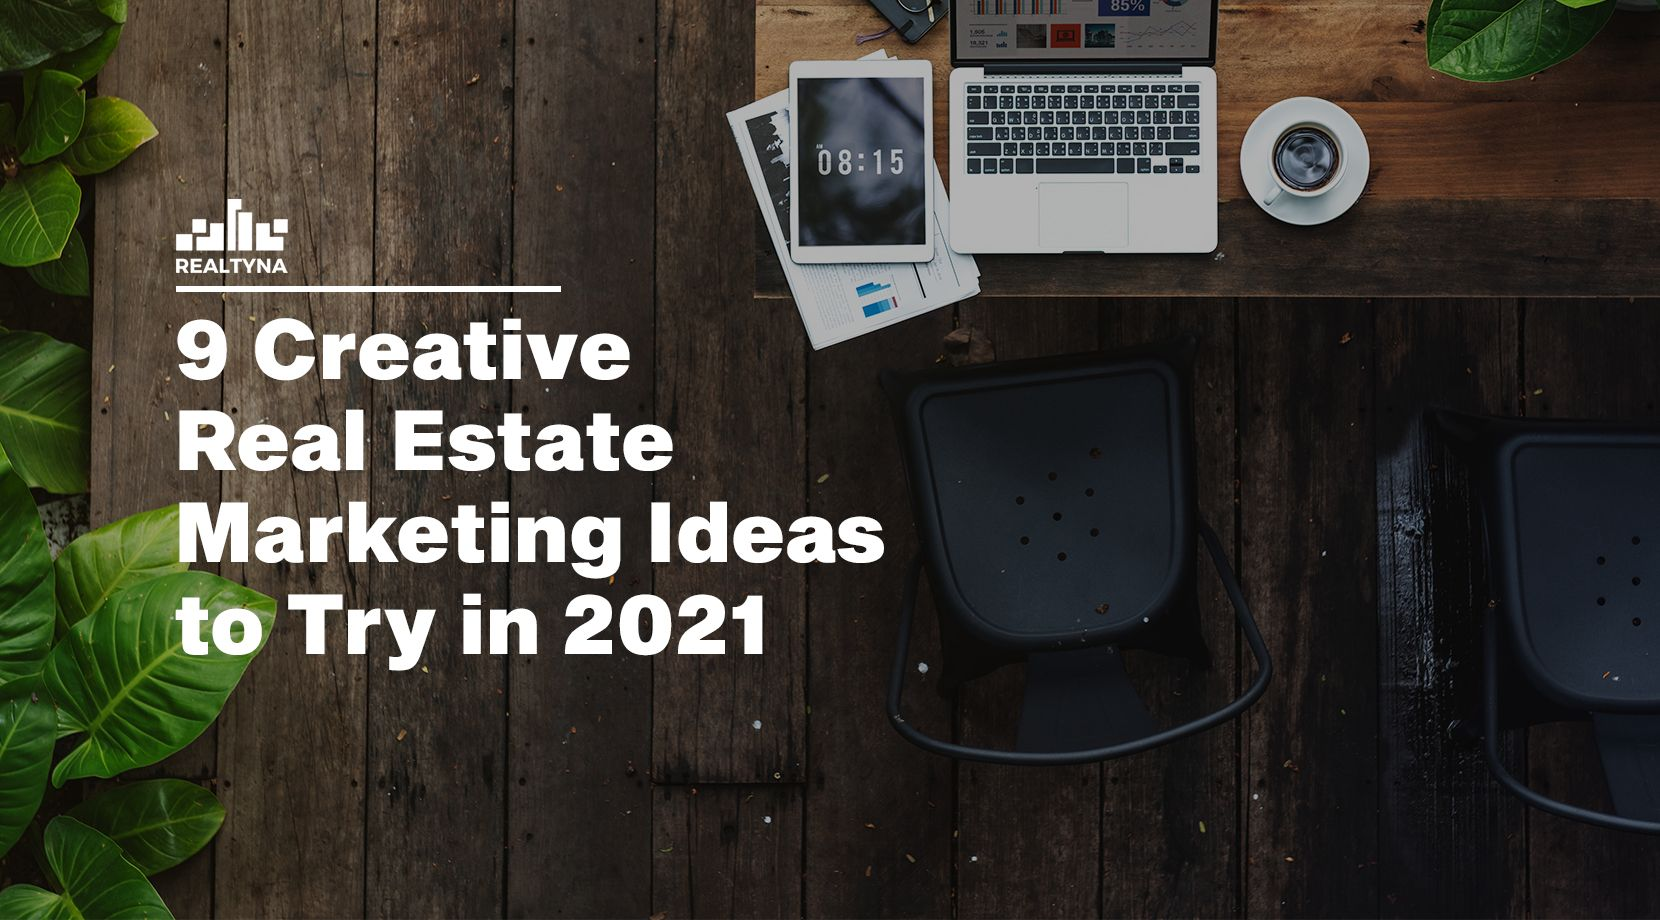 9 Creative Real Estate Marketing Ideas to Try in 2021